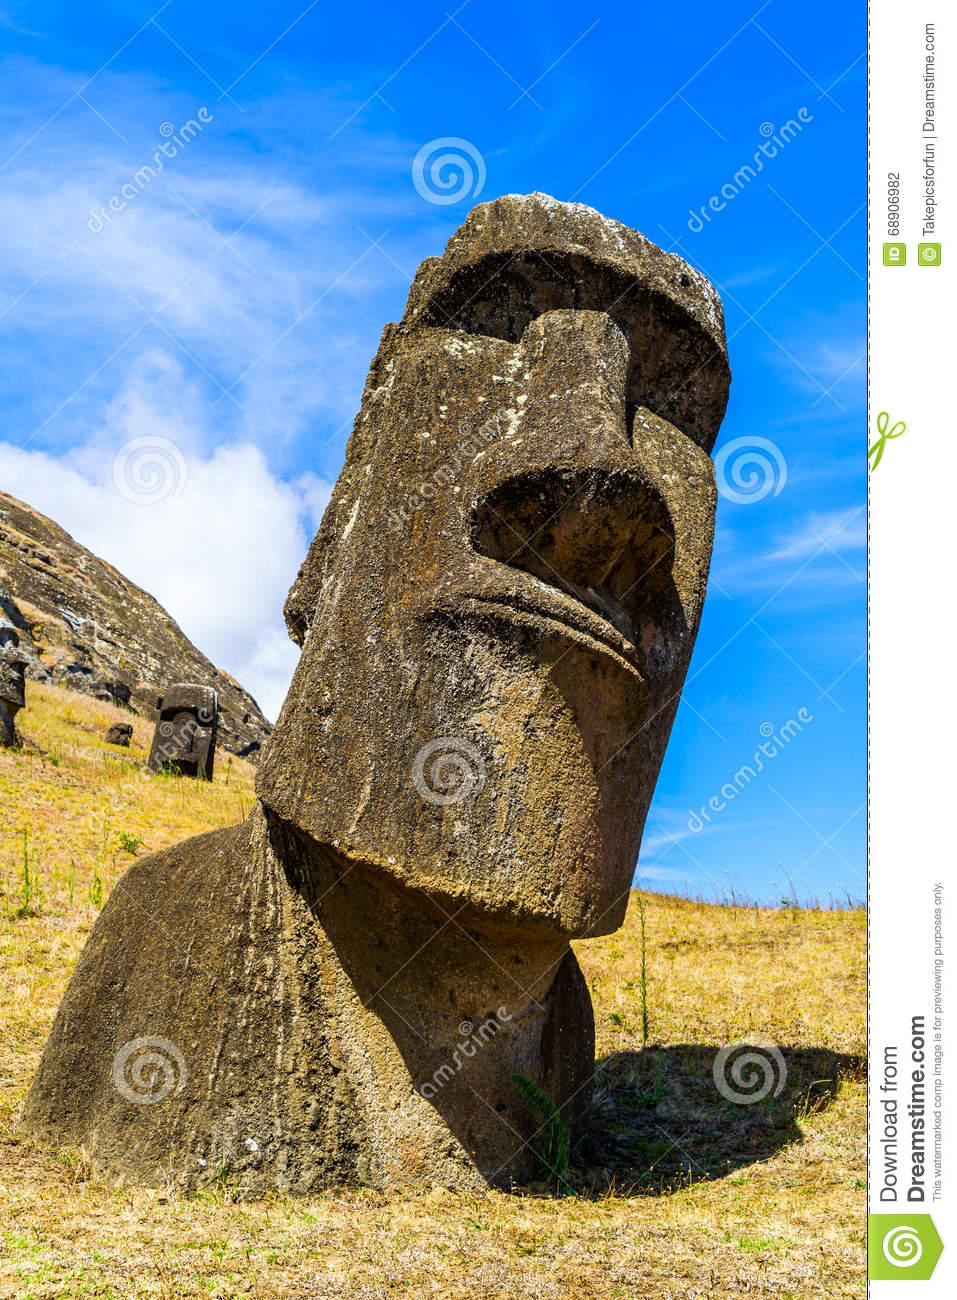 Moai the polynesian stone carving stock photo image